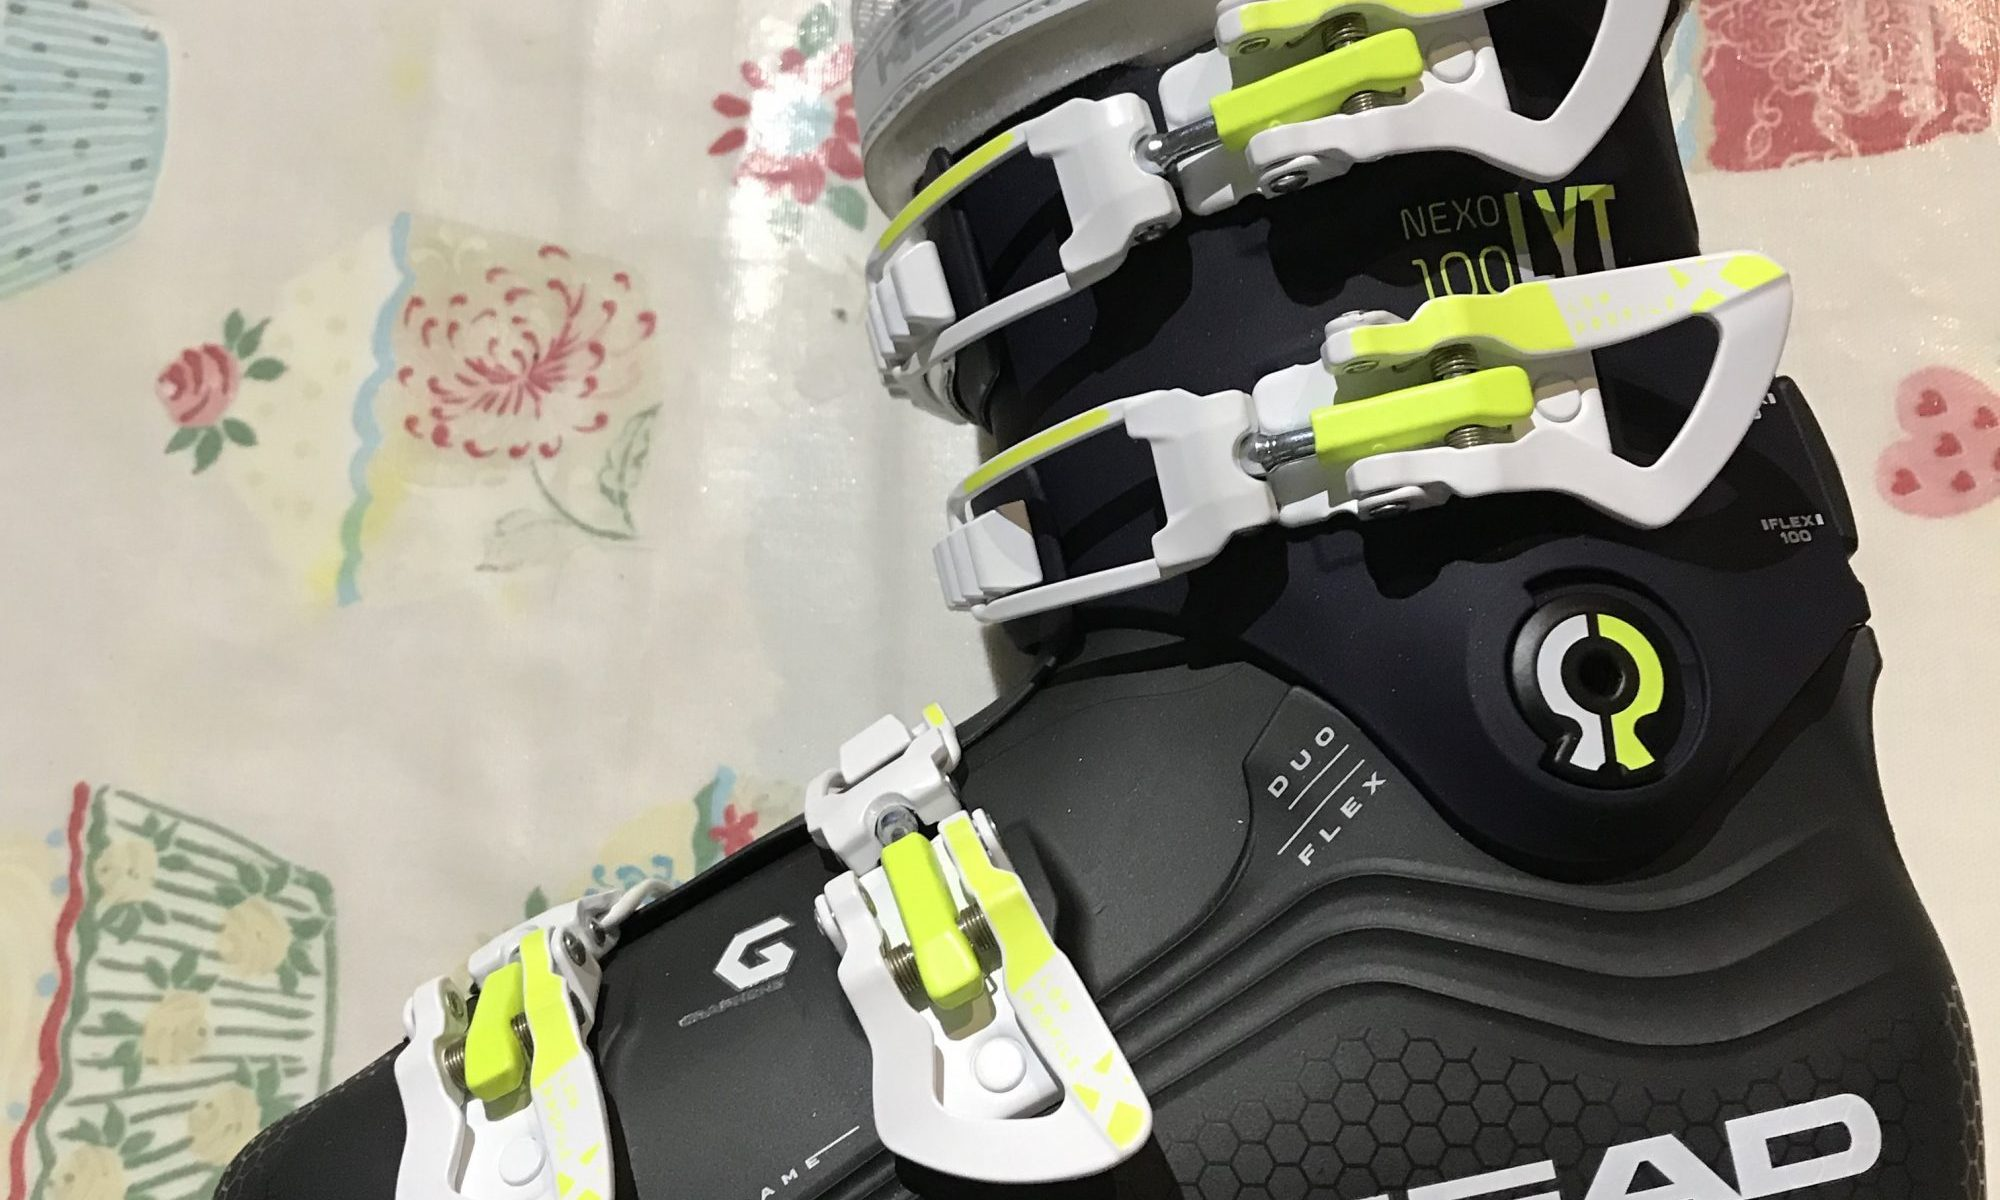 Review on the Head Nexo Lyt 100 W G Ski Boots 2019